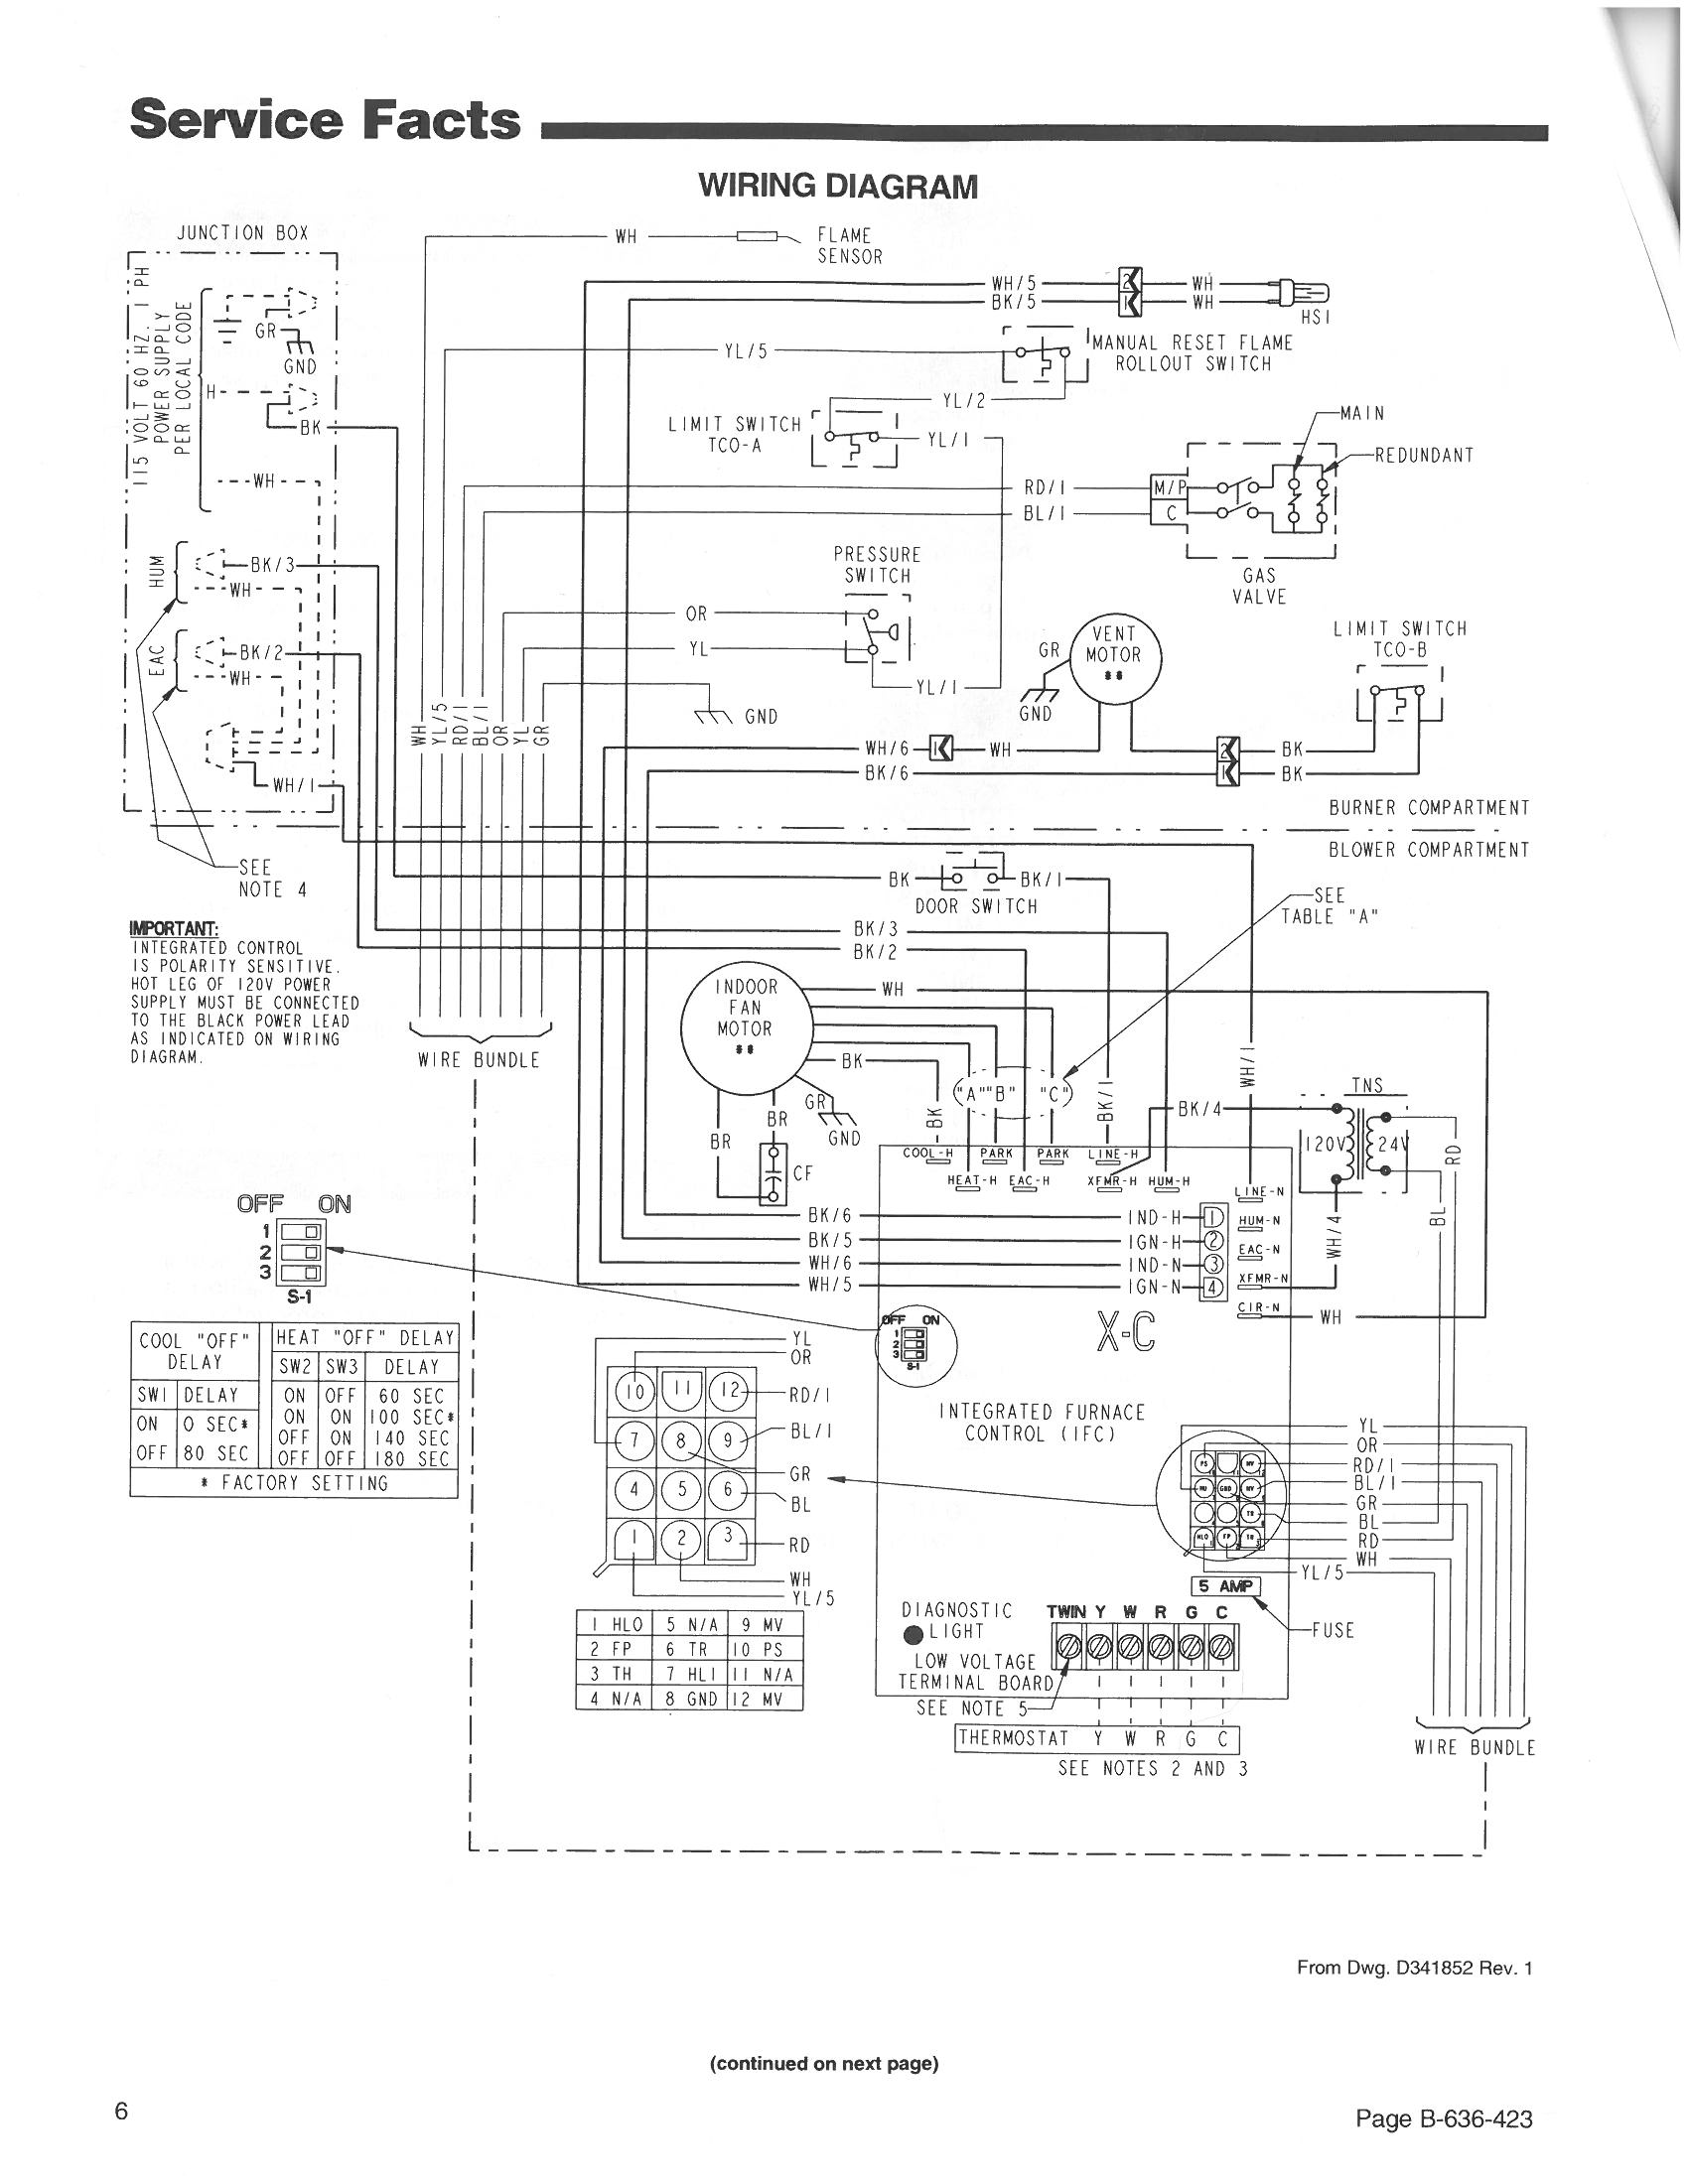 generalaire humidifier wiring diagram free download